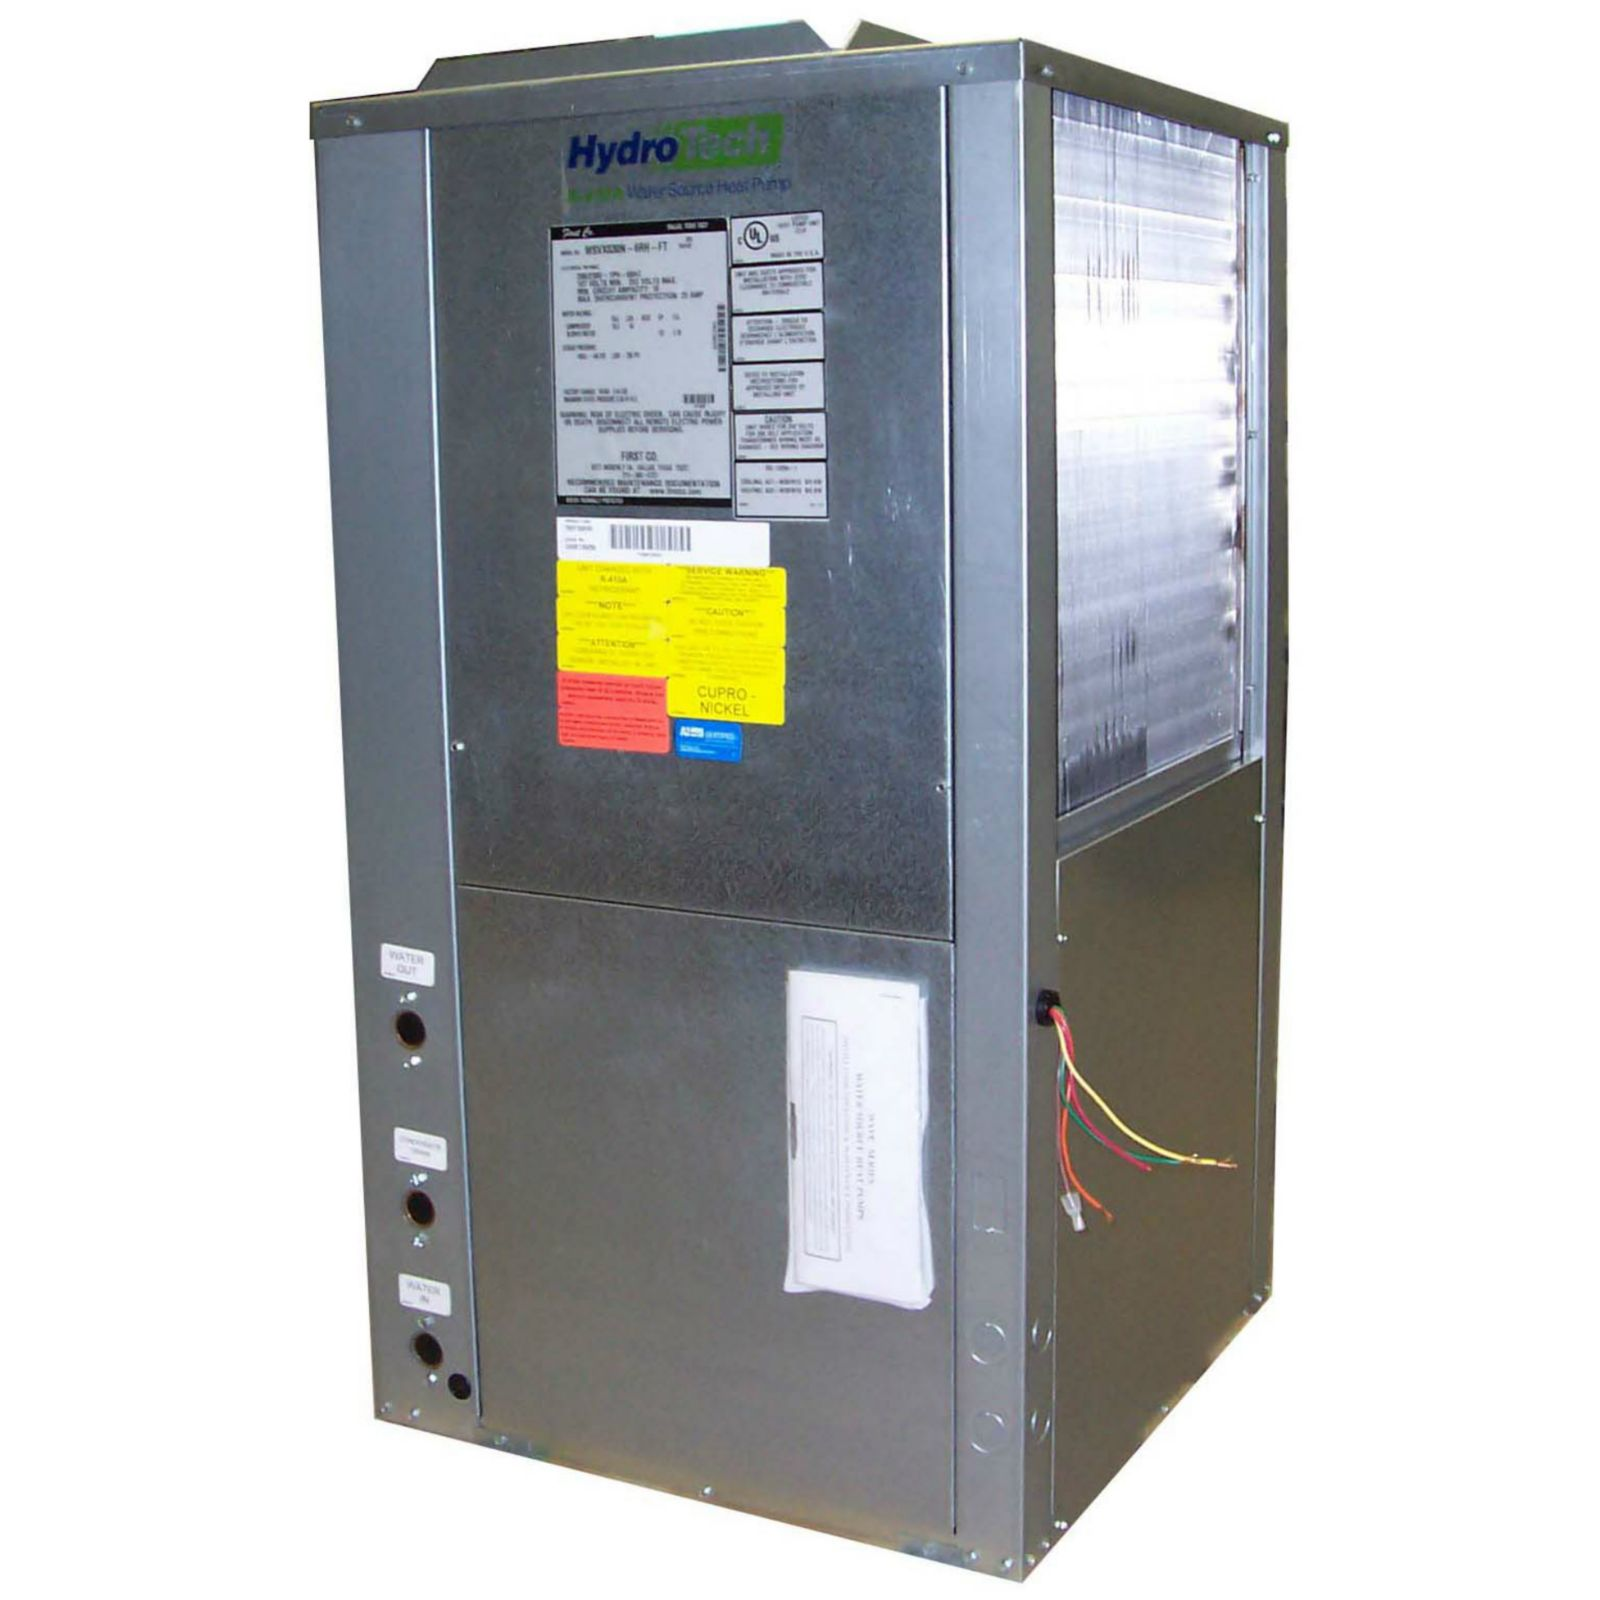 First Co. WSVC042 C E RH FT - Vertical Water Source Heat Pump, 3 1/2 Ton, Copper, Right Hand, Top Discharge, 208-230V/3 Phase